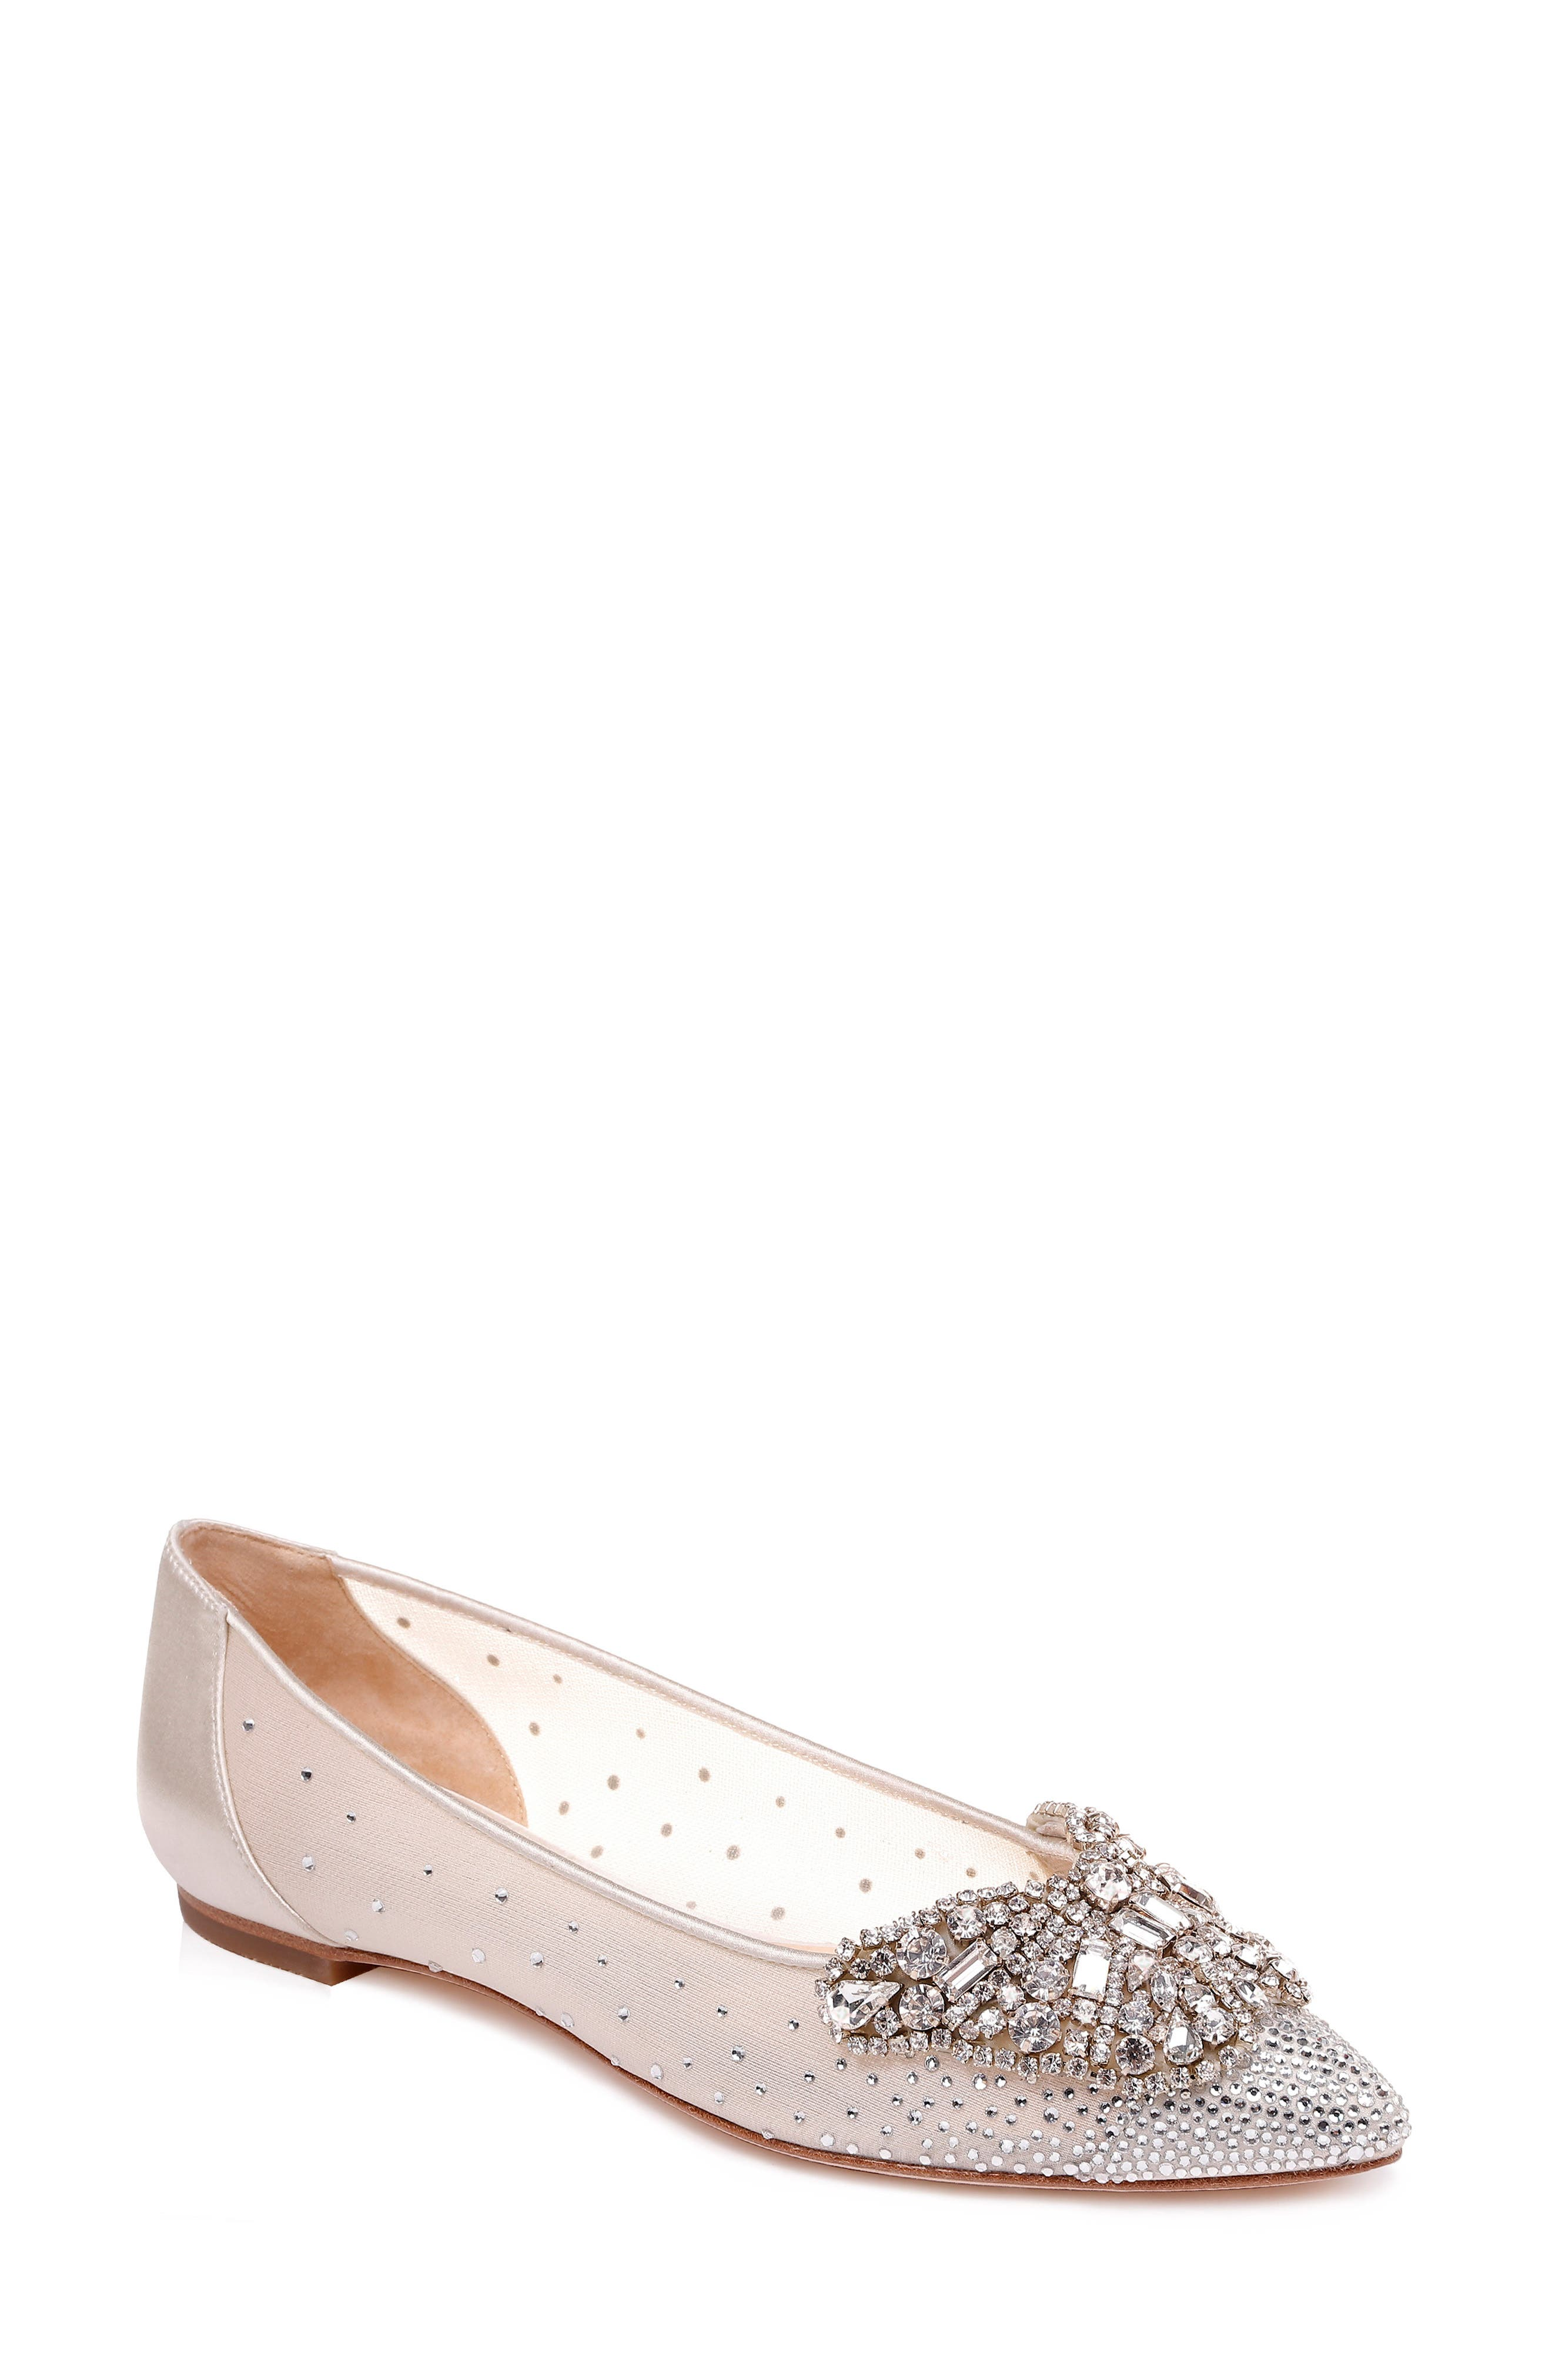 Women'S Quinn Crystal Embellished Pointed Toe Flats in Ivory Satin/ Mesh